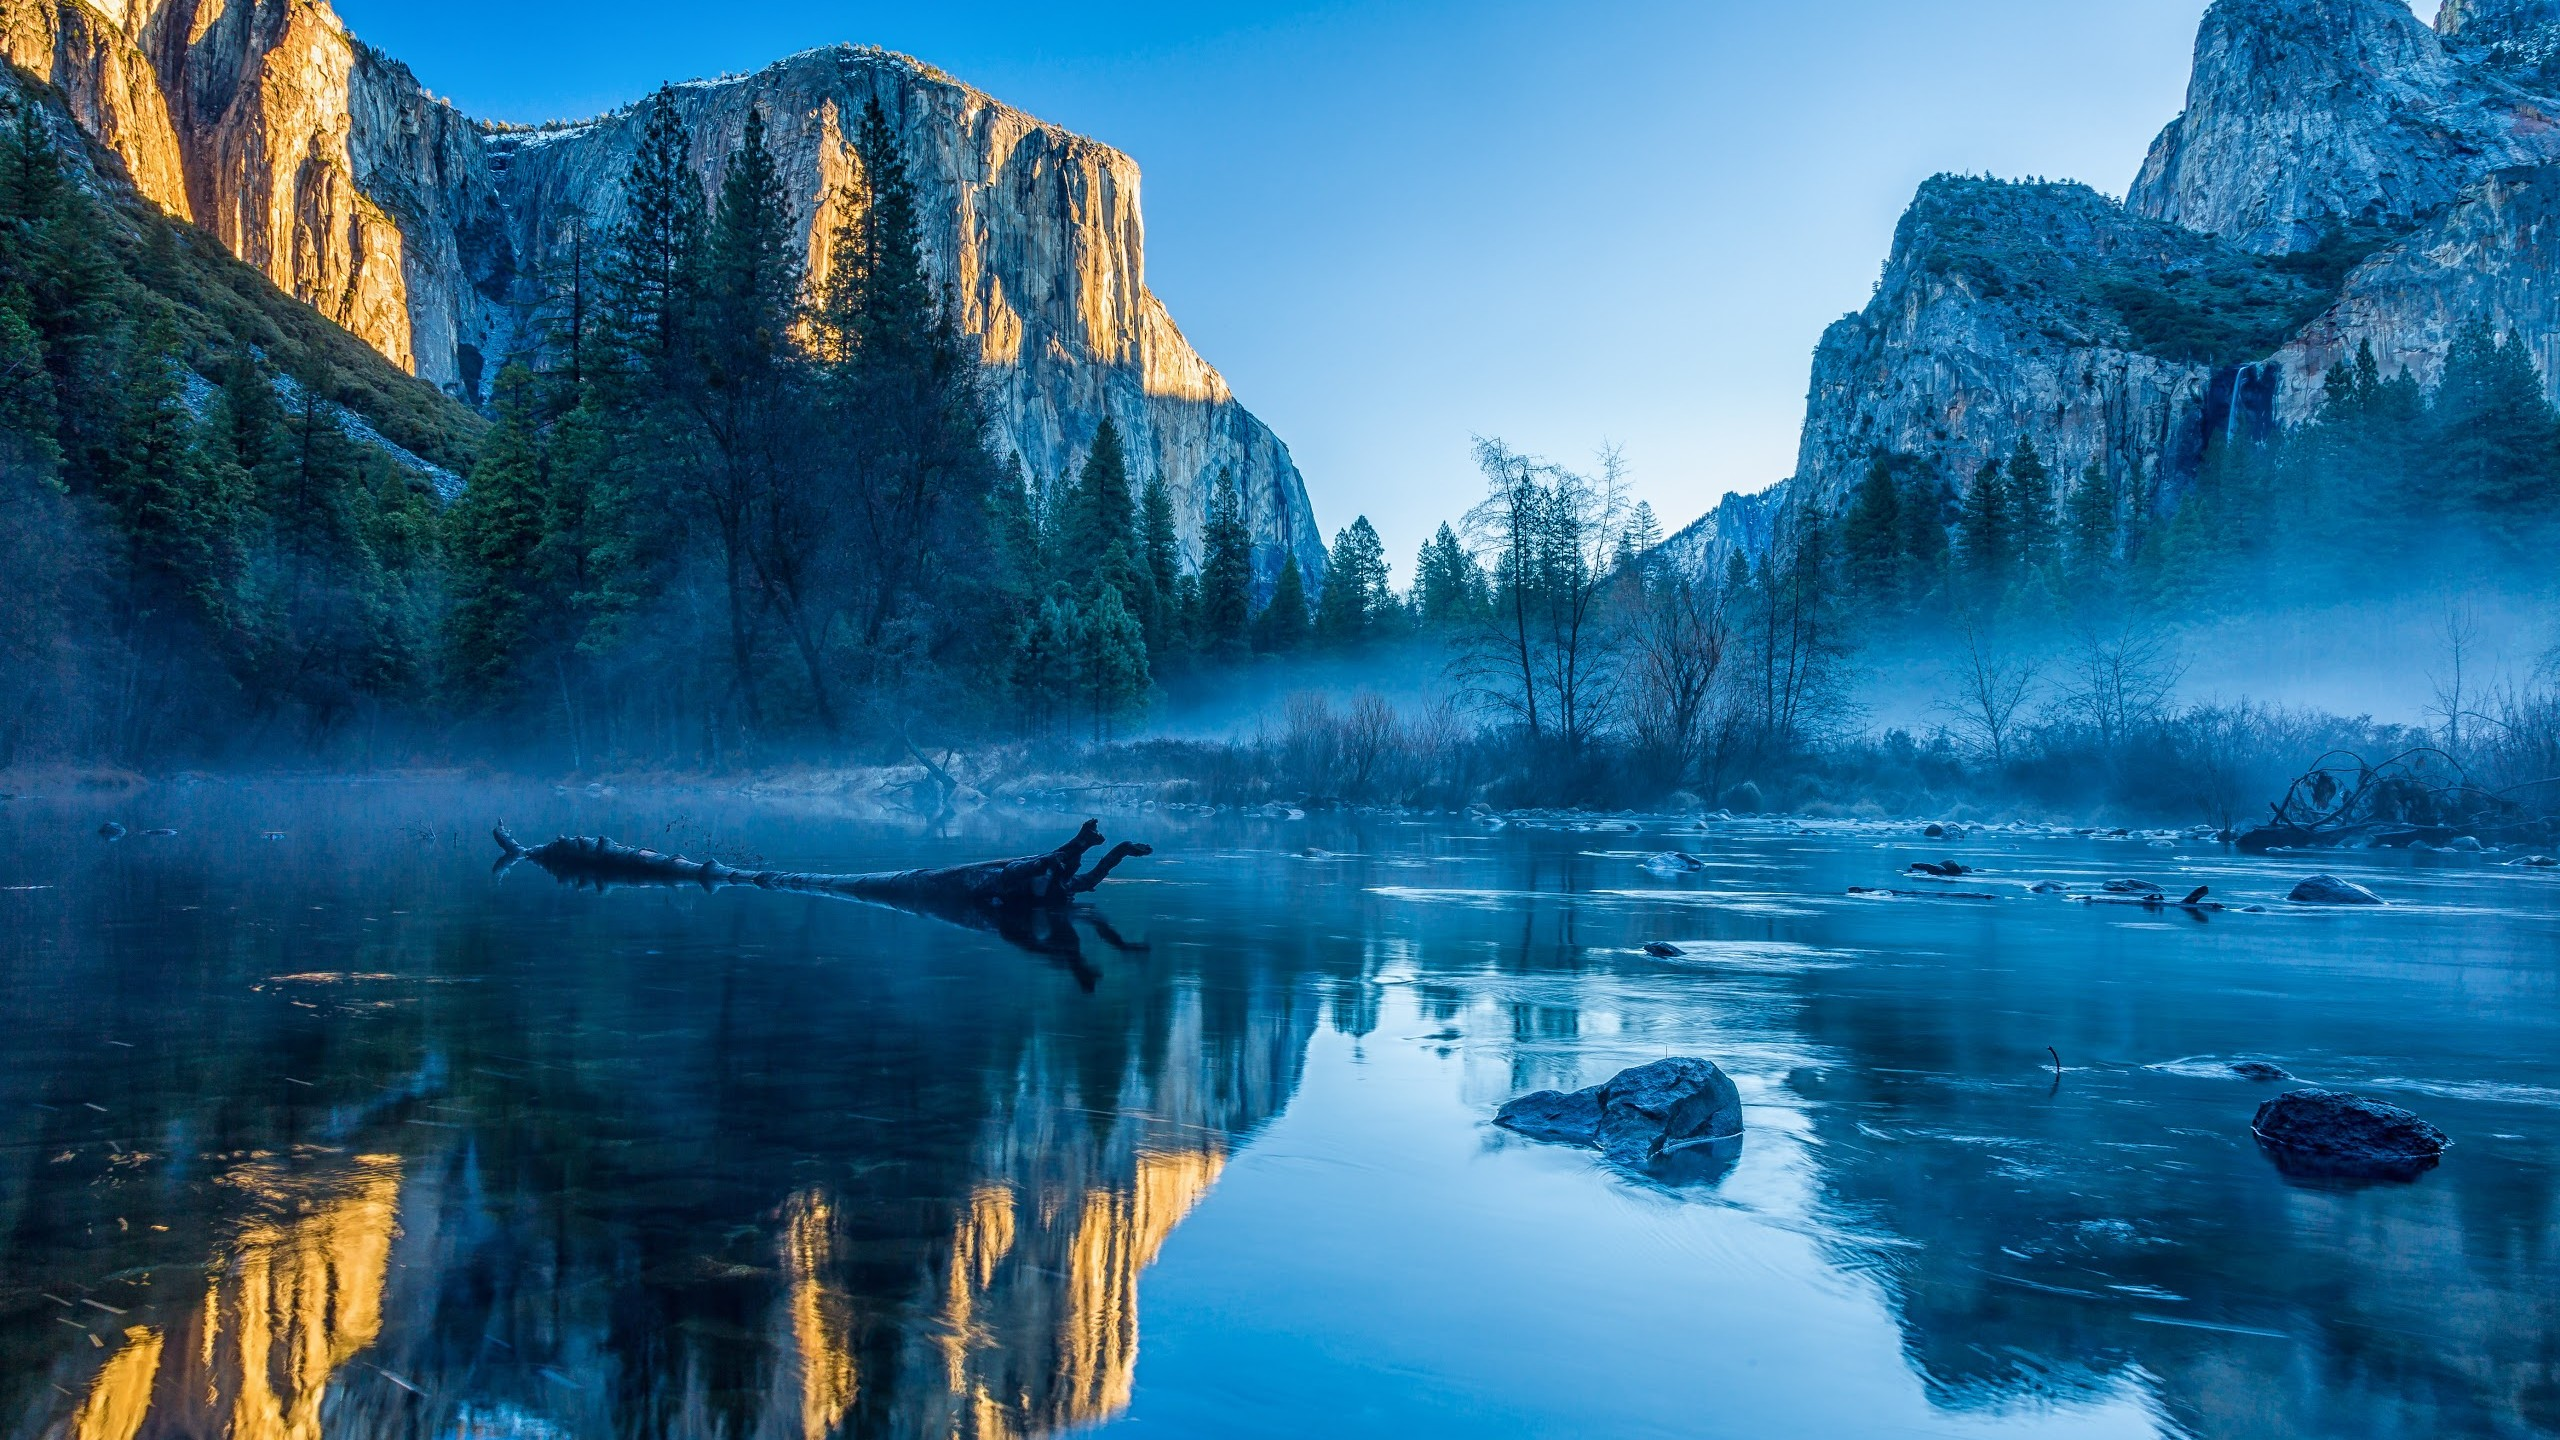 4k Hd Wallapaper: Wallpaper Yosemite, El Capitan, HD, 4k Wallpaper, Winter